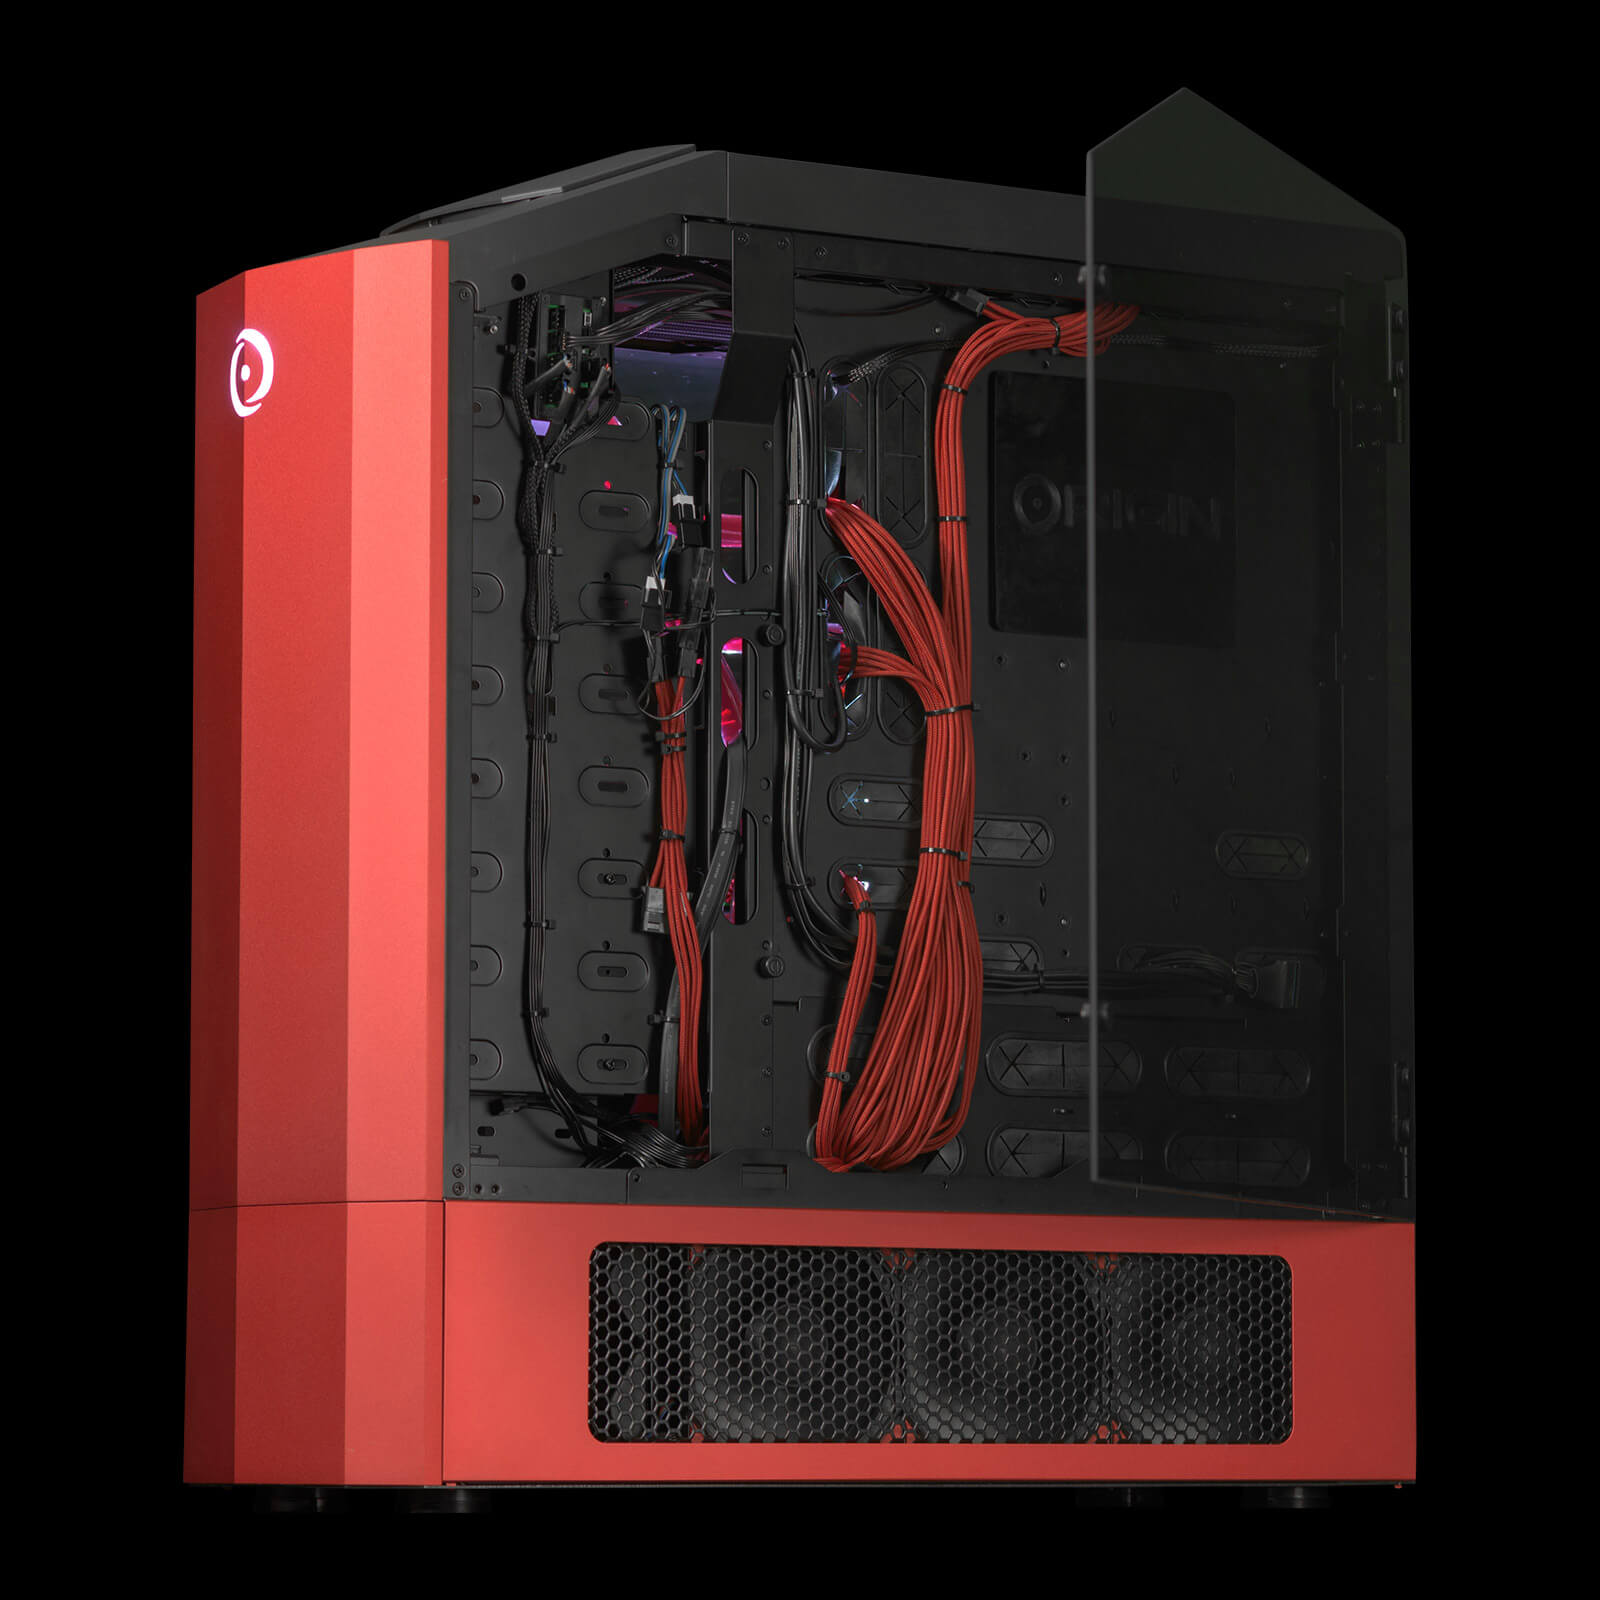 GENESIS Gaming Desktop, GENESIS Desktop | ORIGIN PC